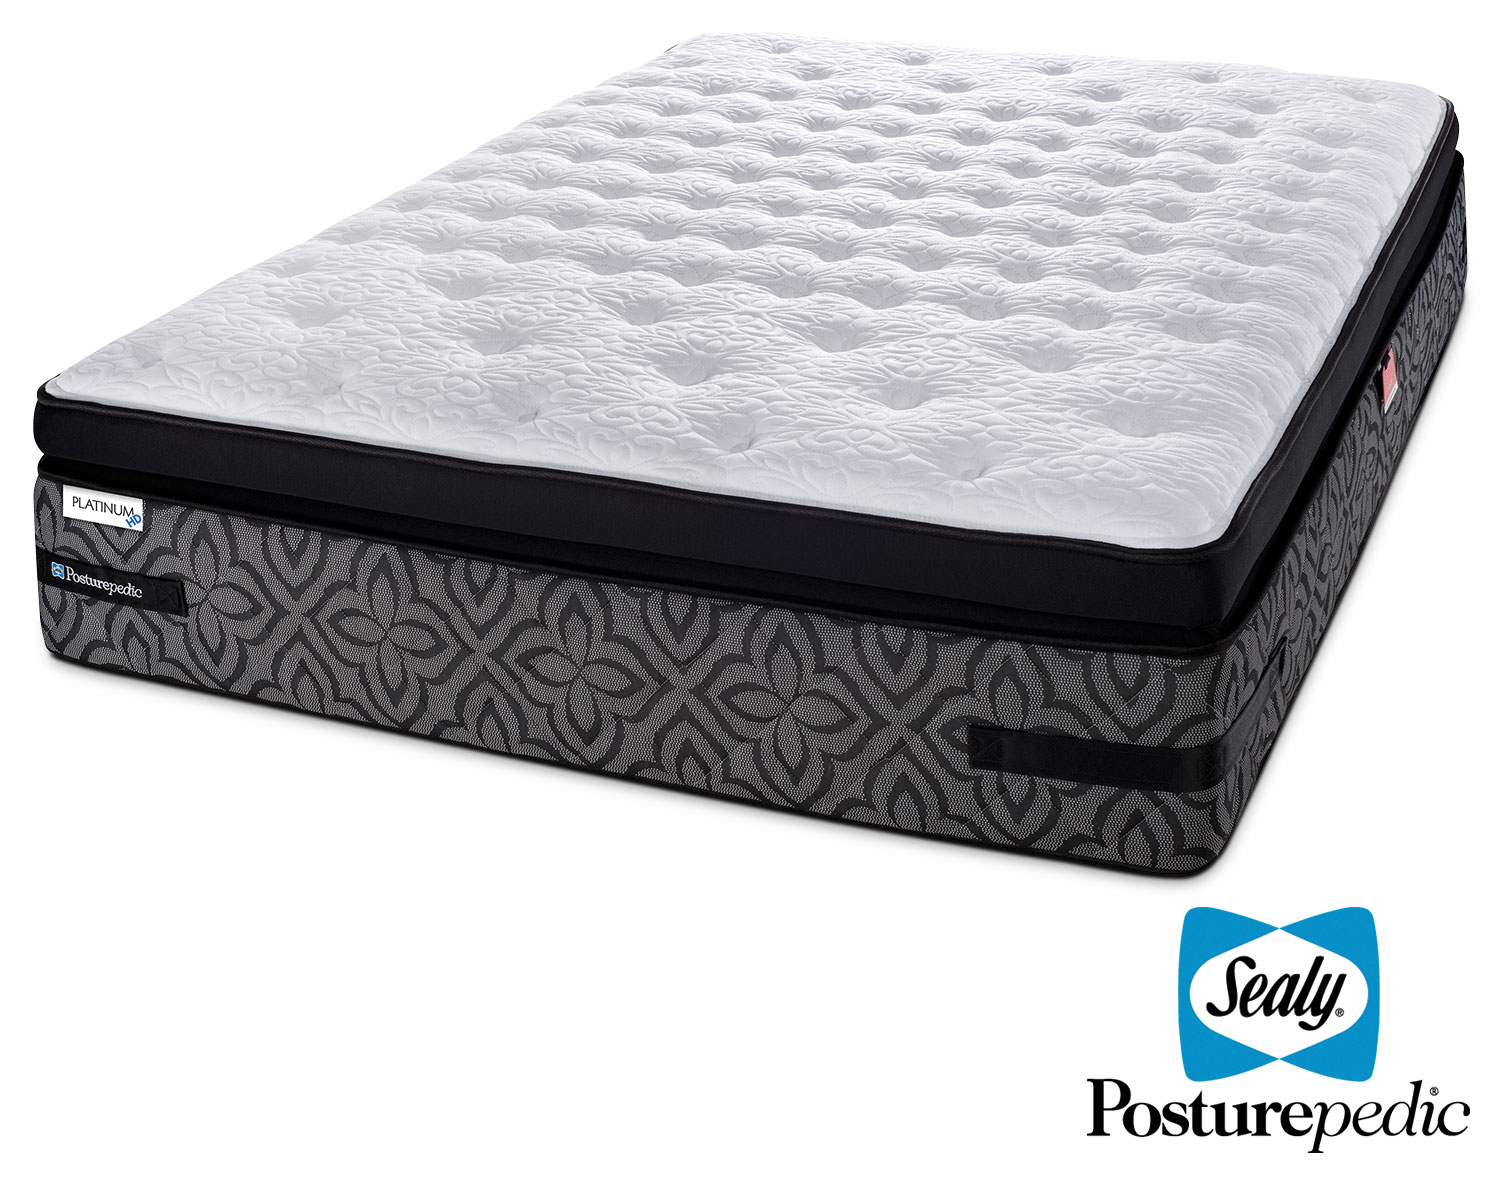 Sealy Posturepedic 3 K Cushion Firm Queen Mattress